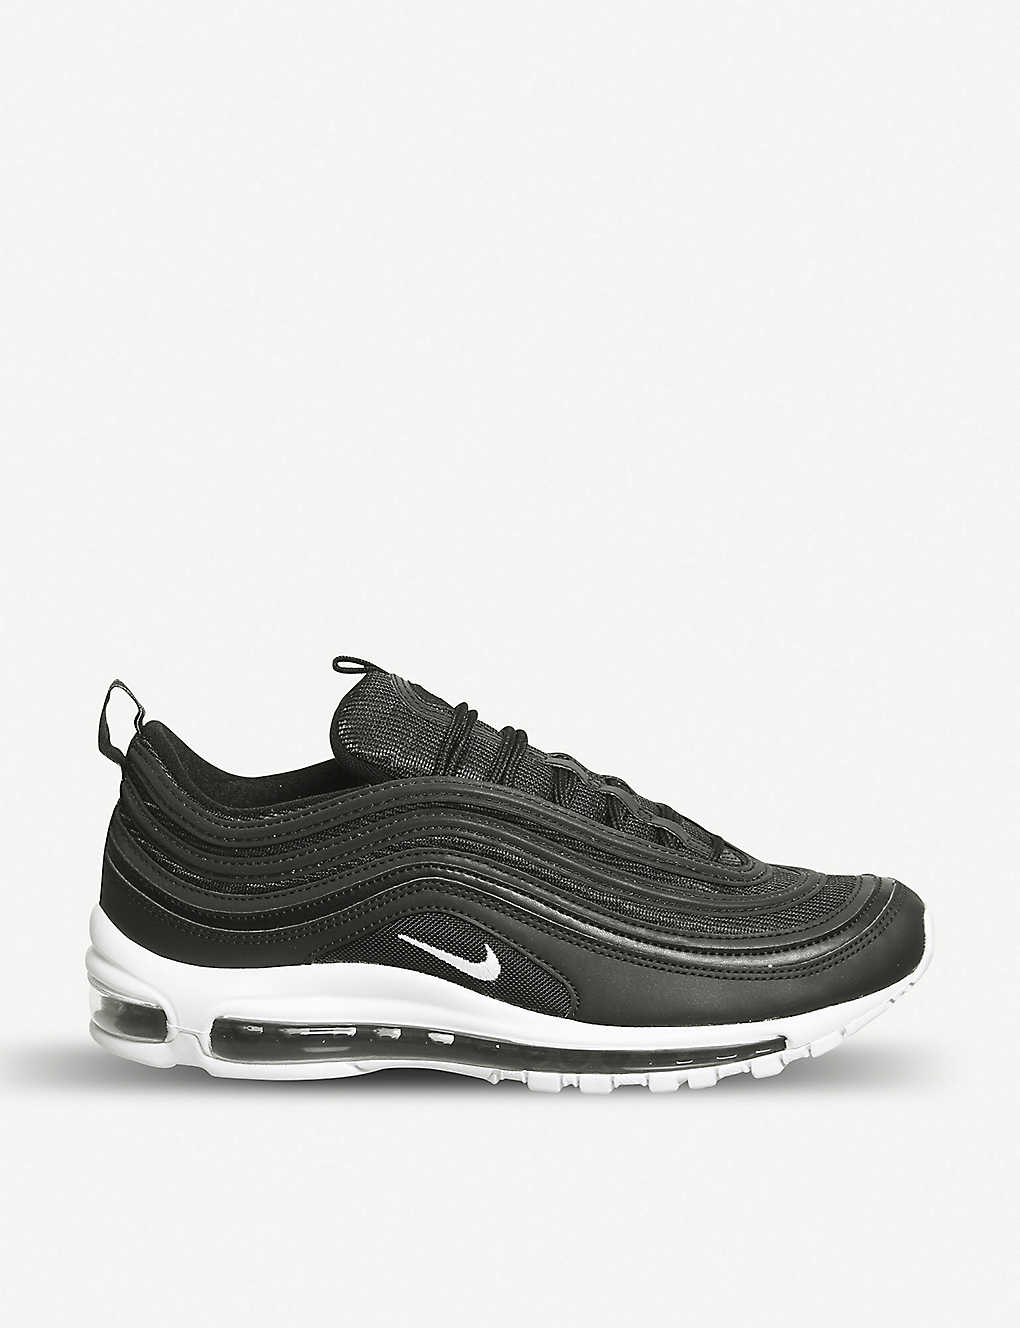 the best attitude 7fe18 f10a0 NIKE Air Max 97 leather trainers